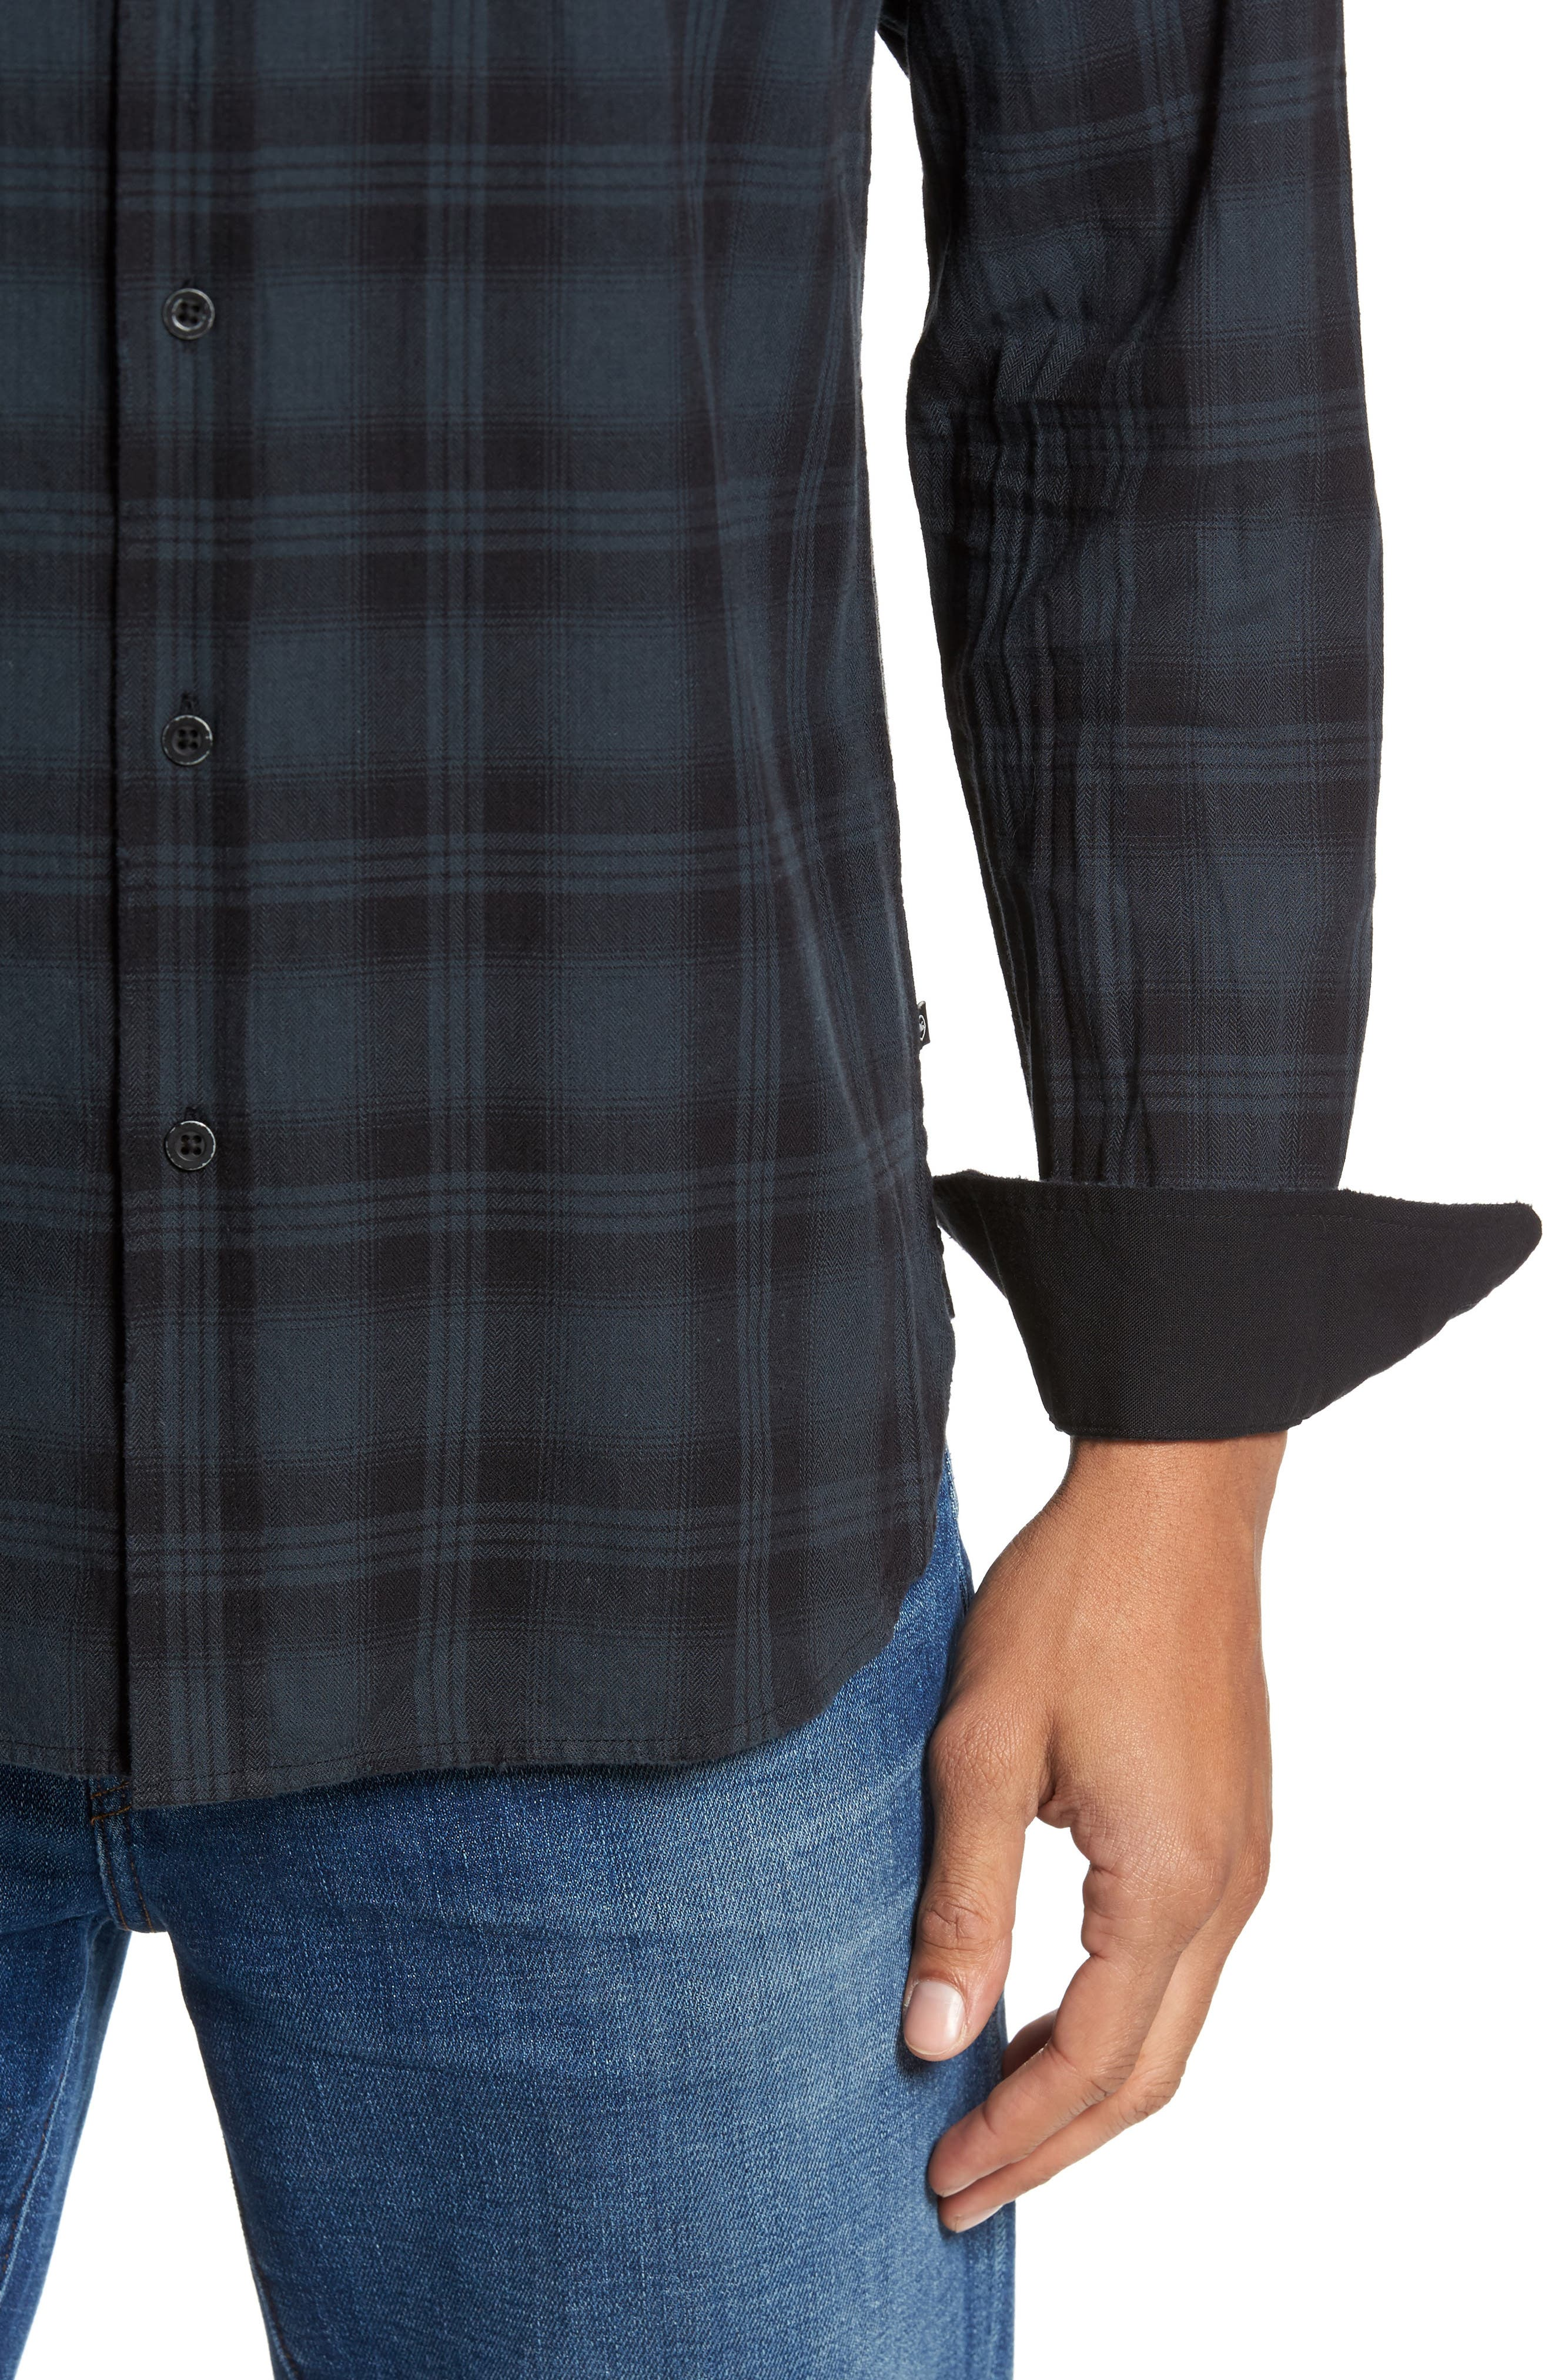 Colton Slim Fit Plaid Sport Shirt,                             Alternate thumbnail 4, color,                             487